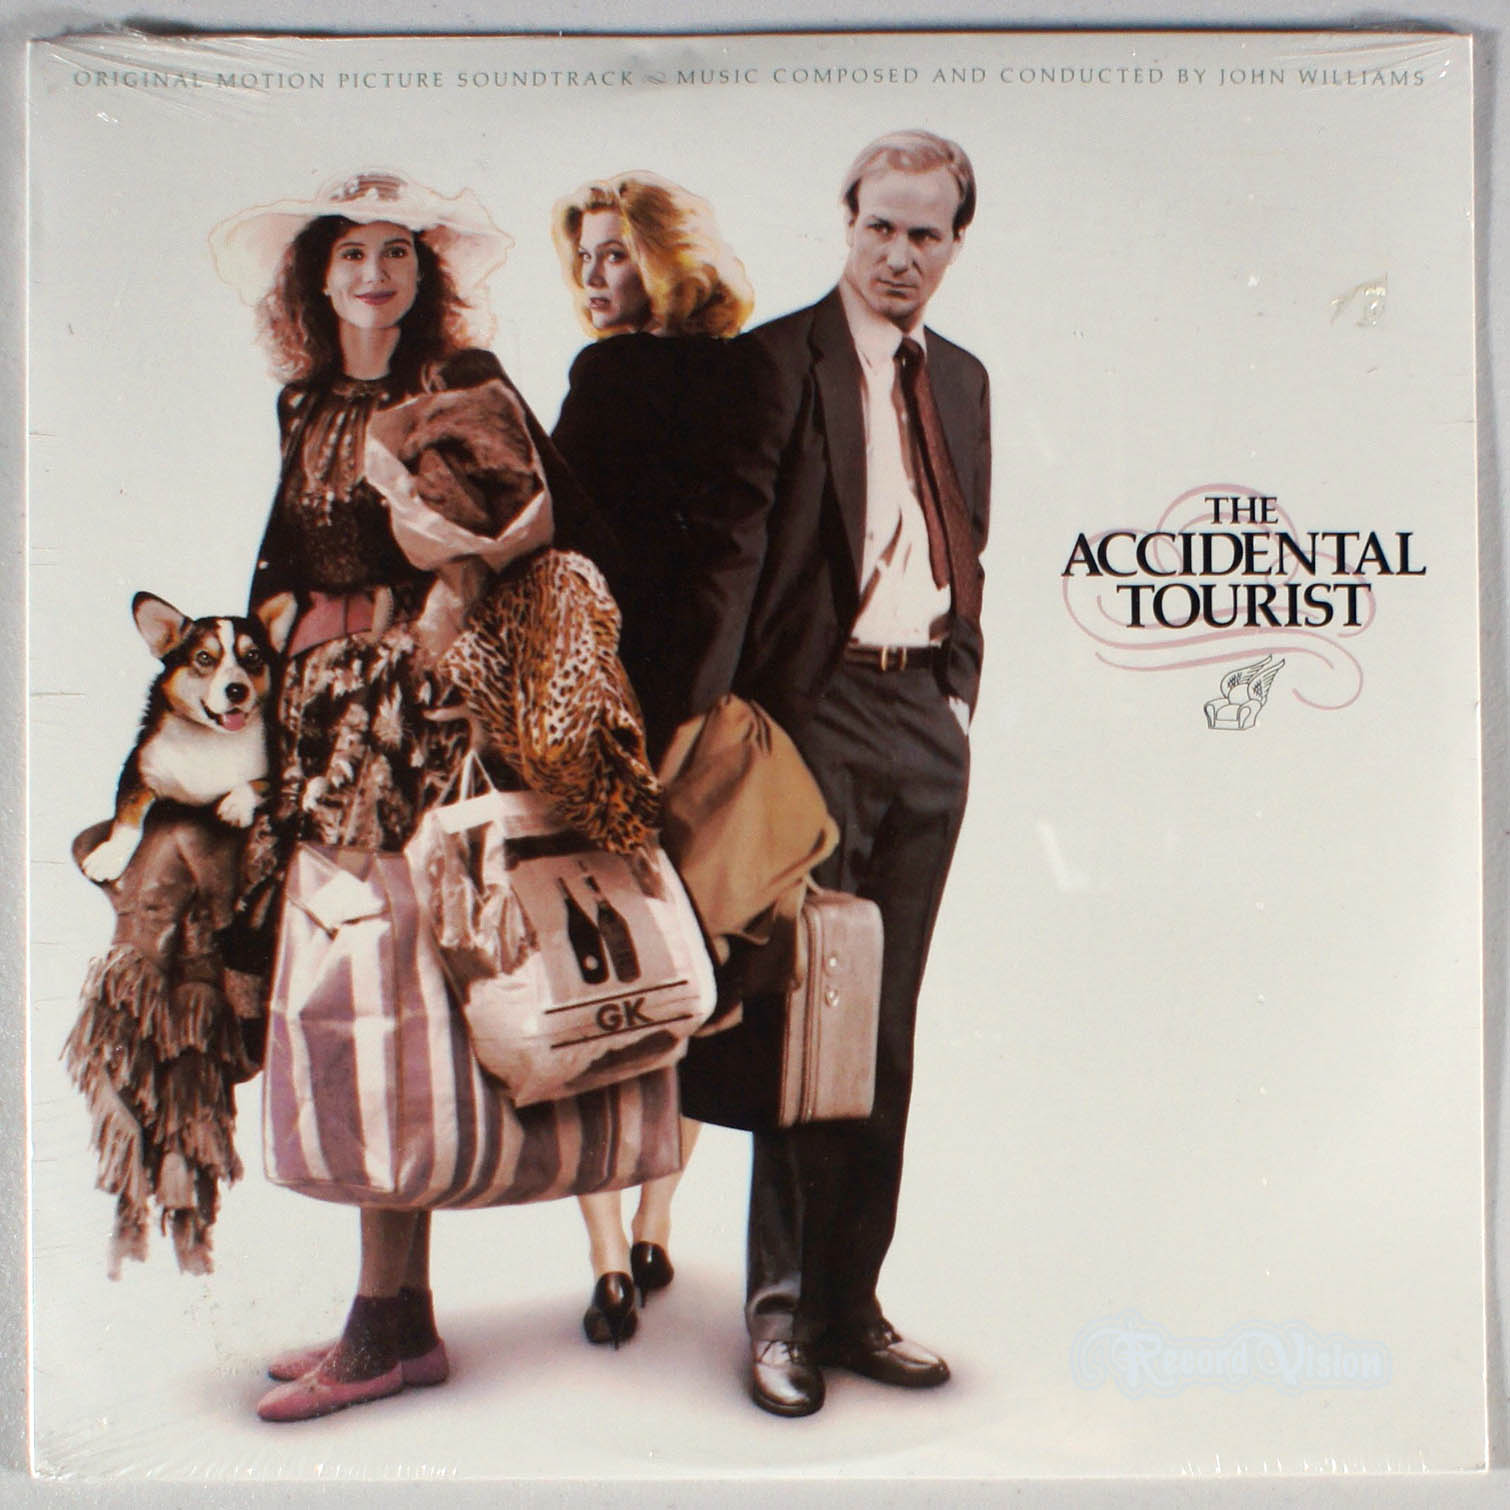 ASSORTED (JOHN WILLIAMS) - The Accidental Tourist - 33T